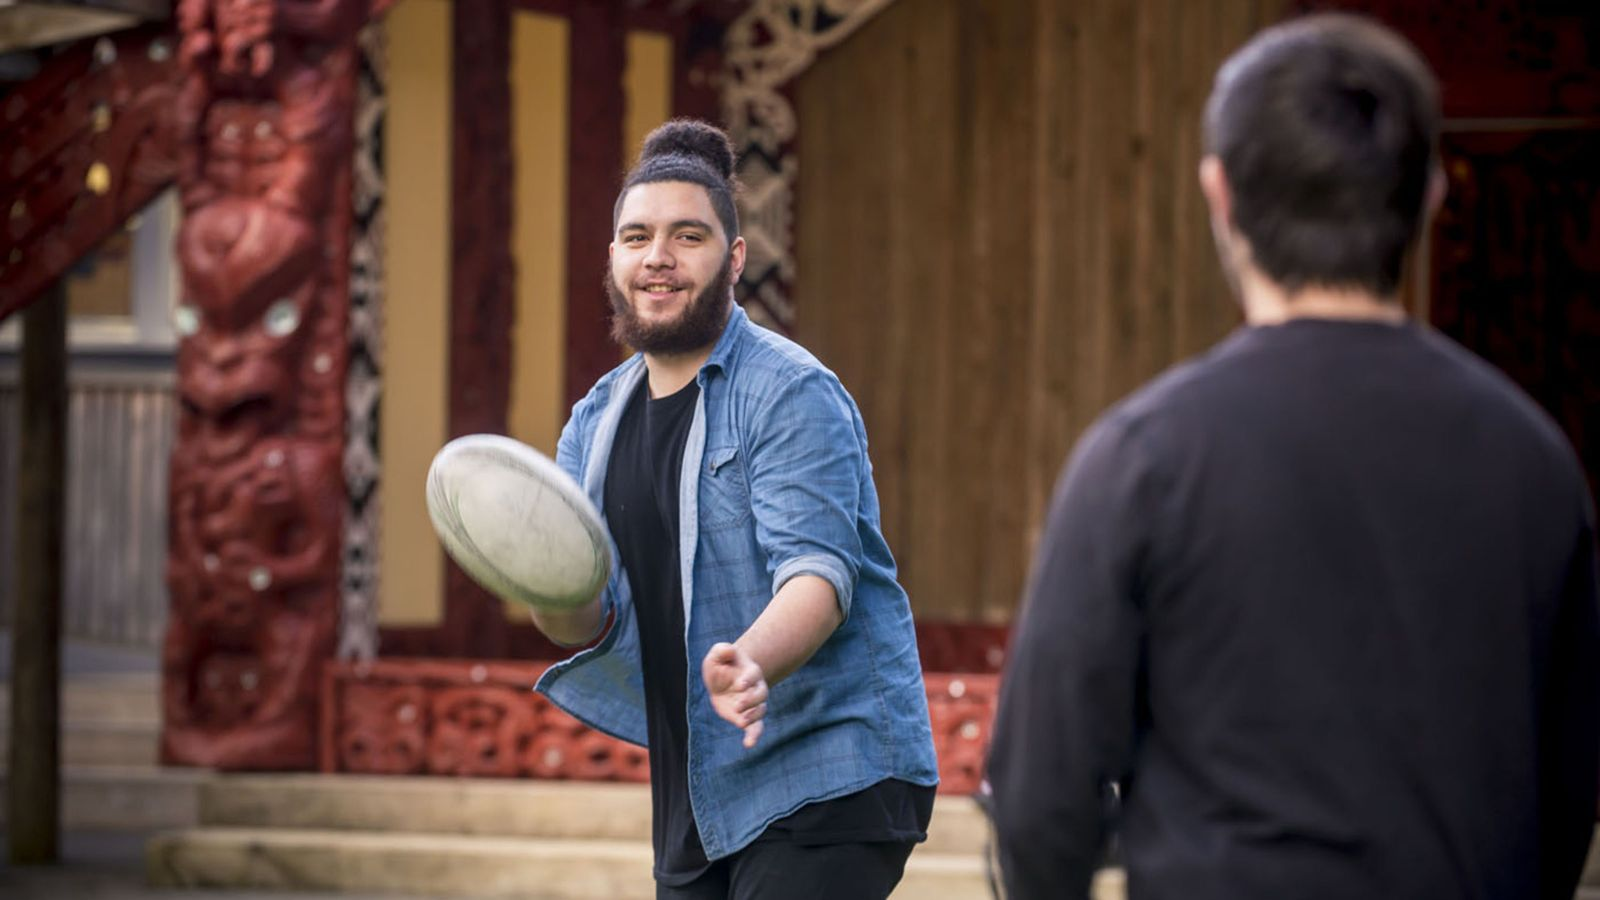 One young man passes a rugby ball to another on the grass outside a marae.